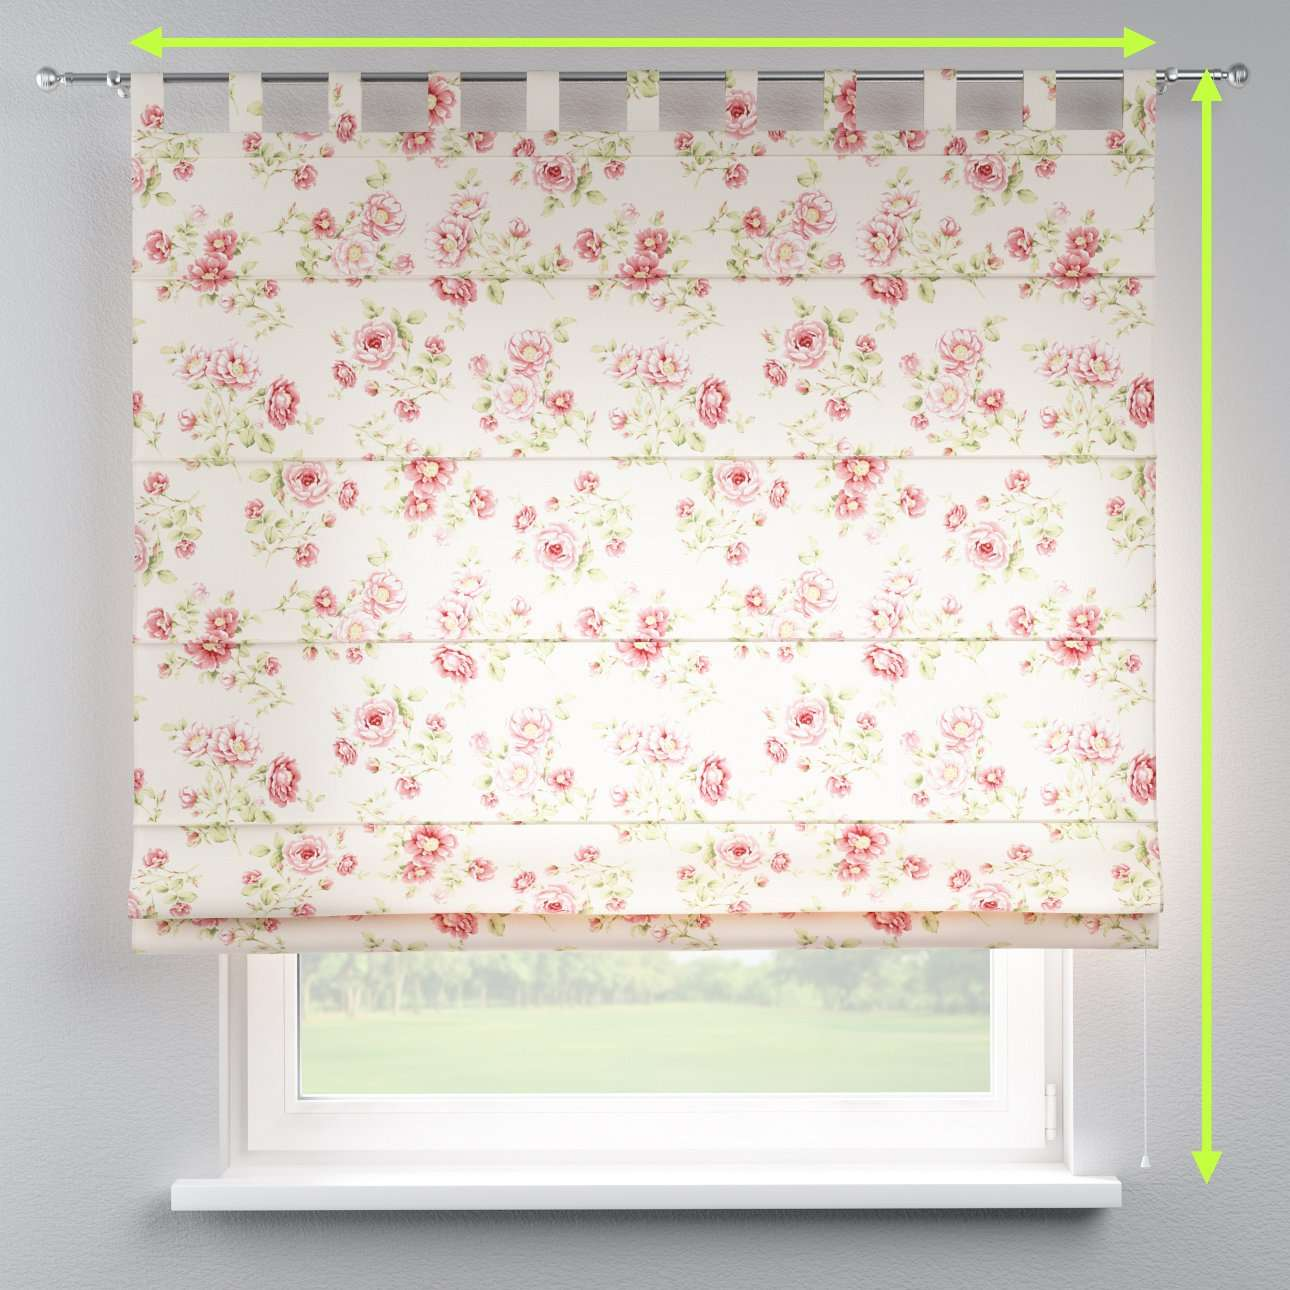 Verona tab top roman blind in collection Ashley, fabric: 137-47